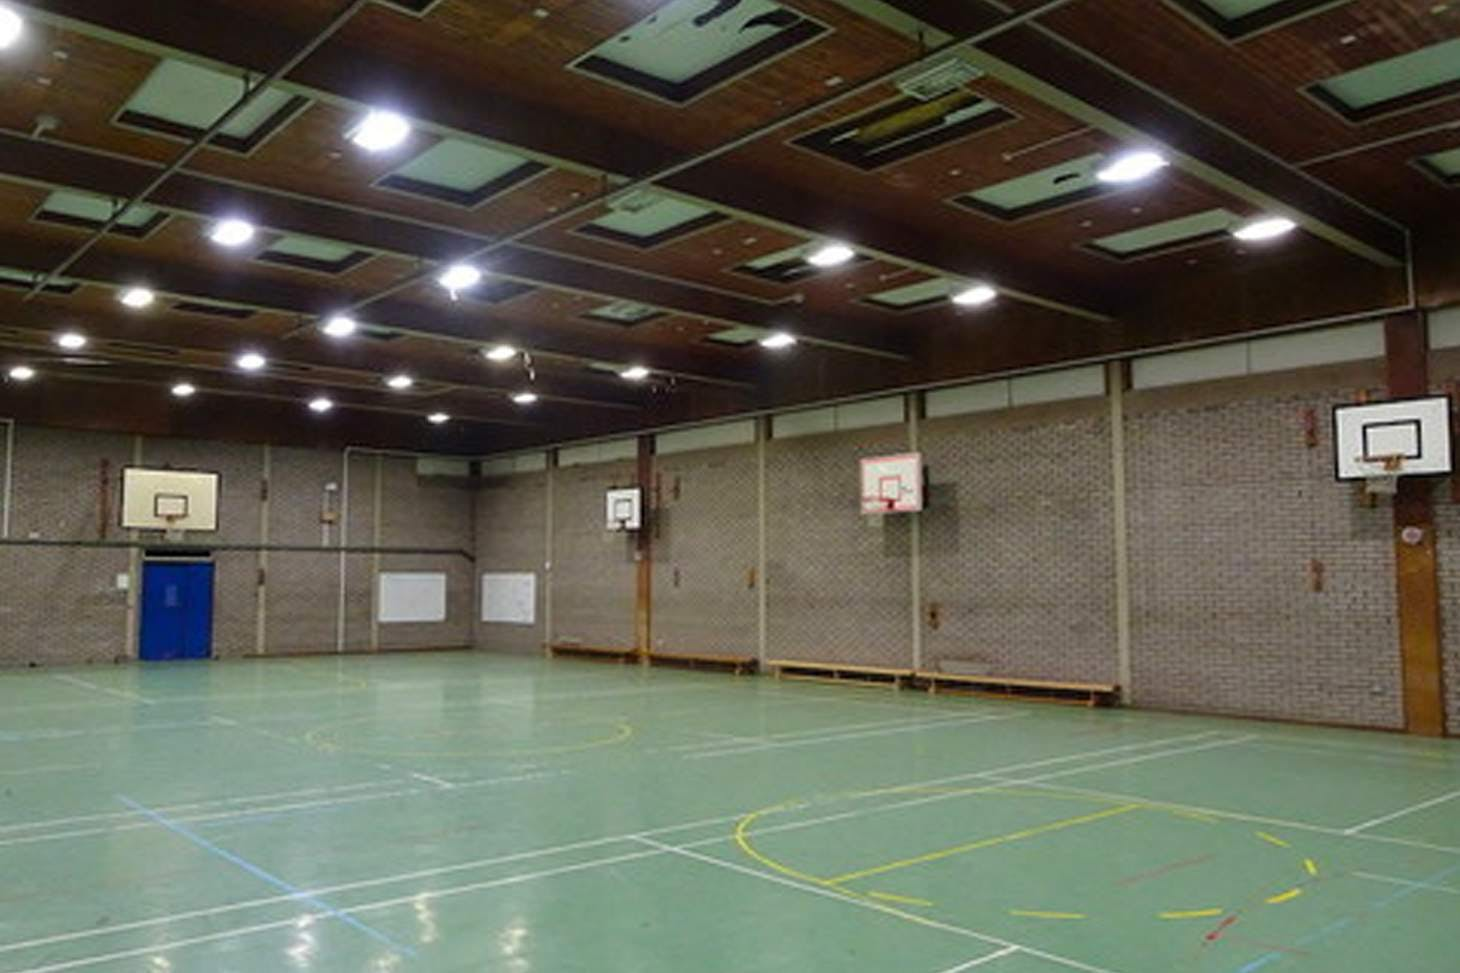 Holmer Green Senior School Court | Sports hall netball court